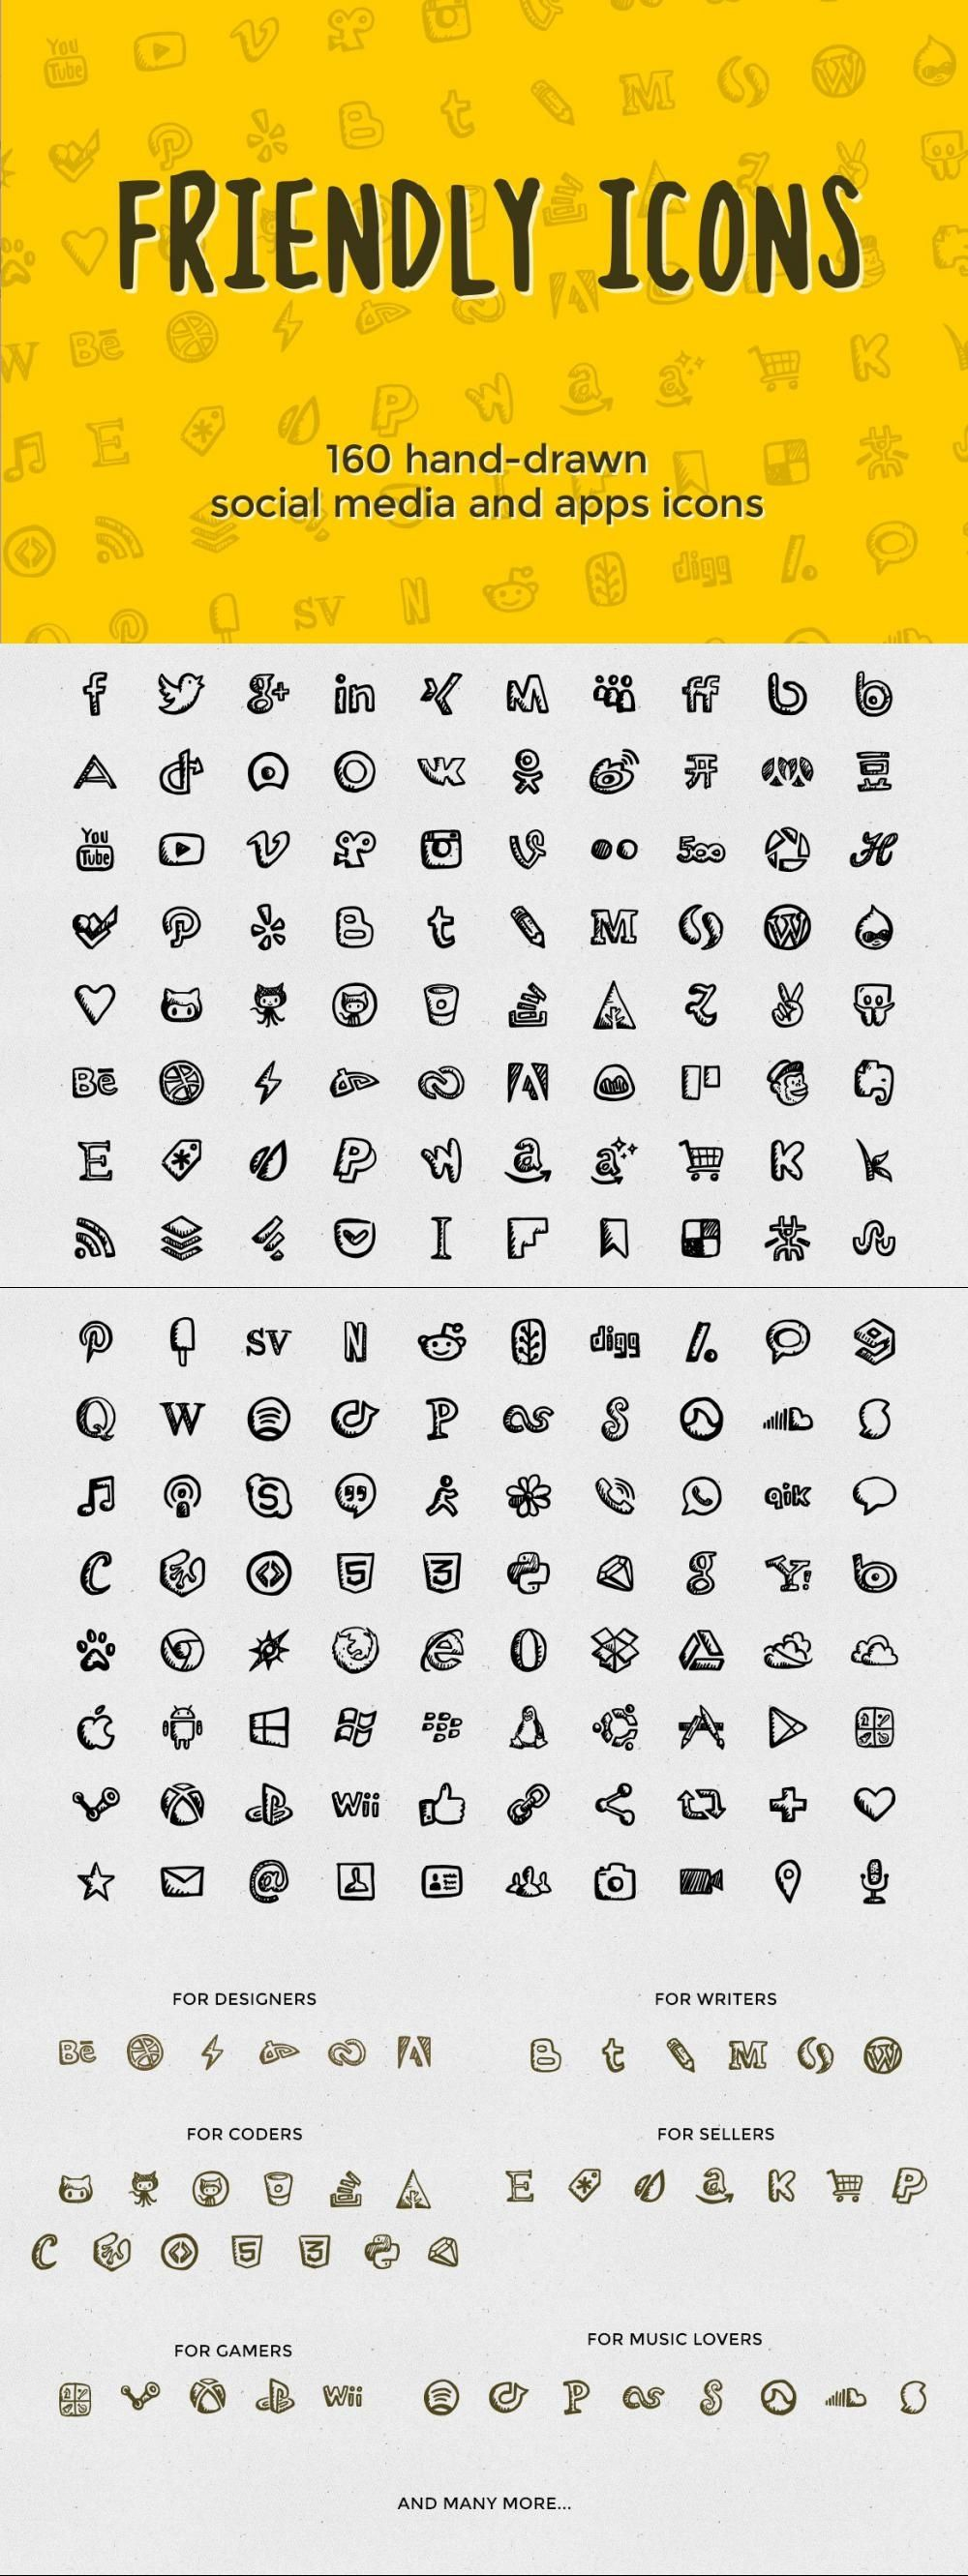 Friendly Icons 160 Social Icons Webopenfontformat Iconpack Iconset Vector Commerce Iconset Mobile Computer Cs6 In 2021 Social Icons Icon Pack Icon Collection